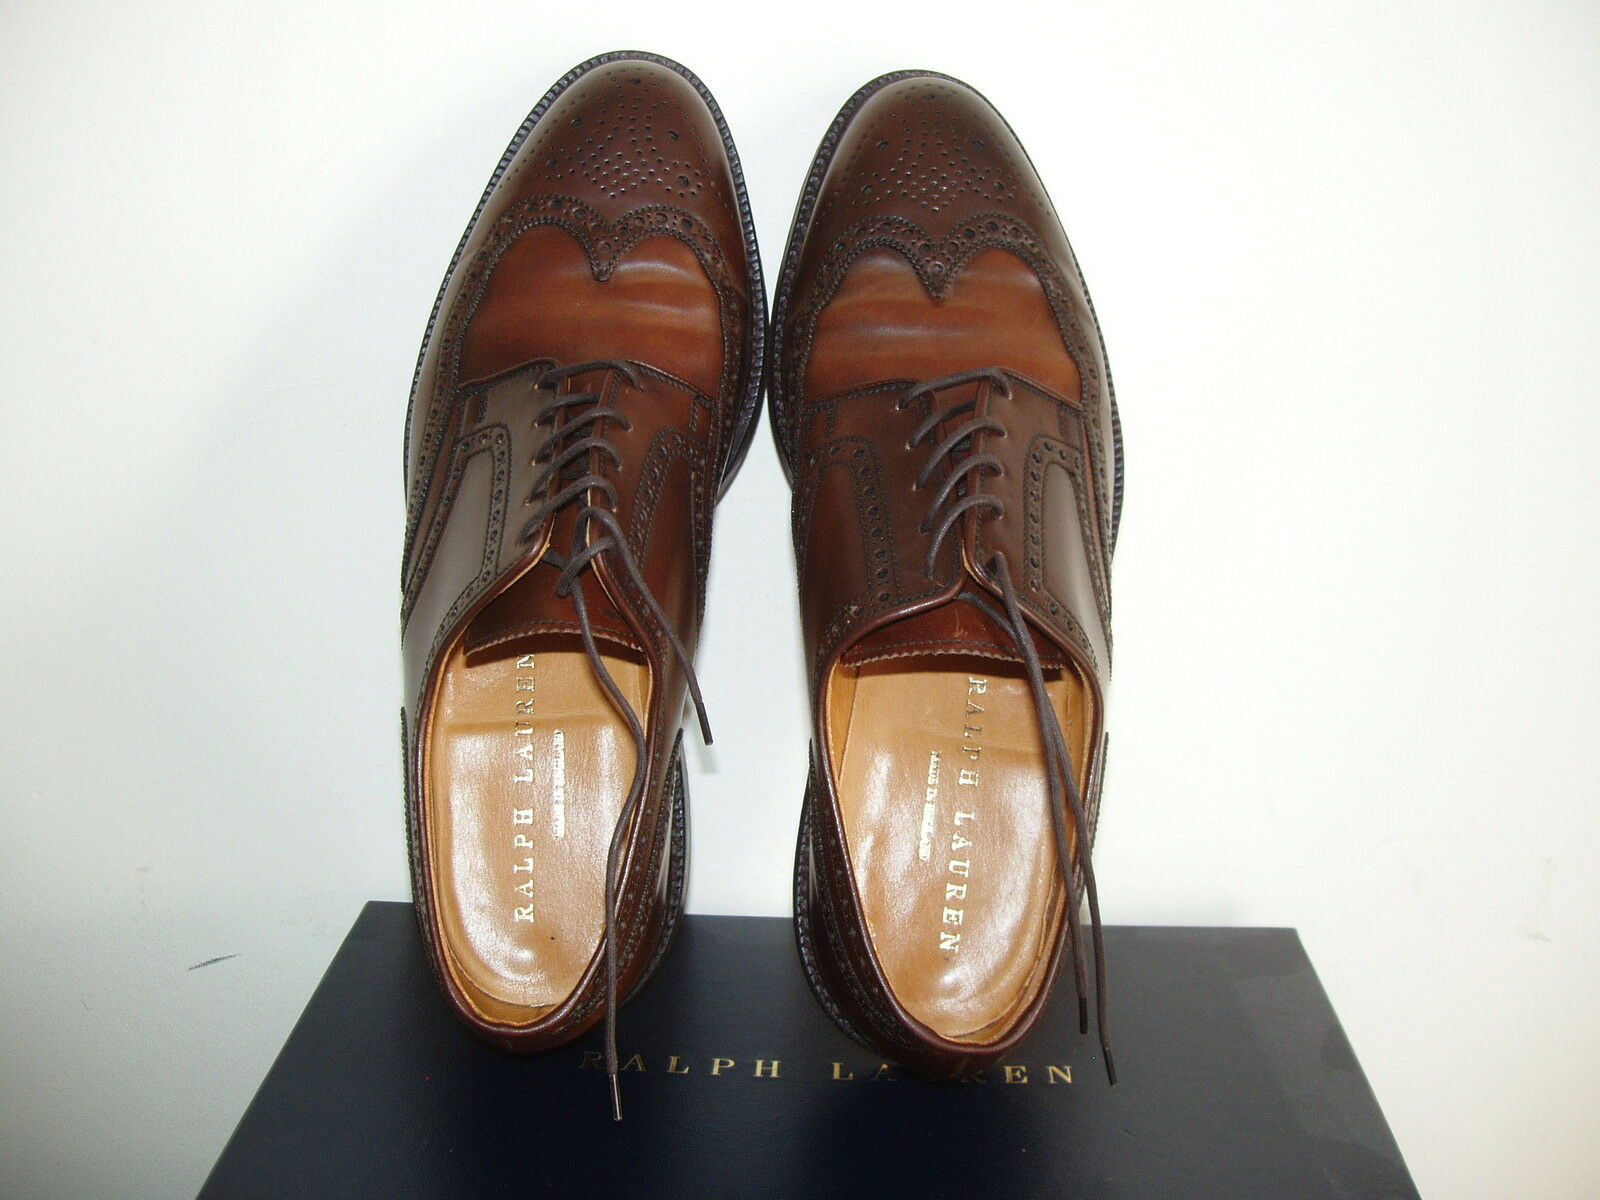 RALPH LAUREN Cordovan Con Lacci Brogues Shoes